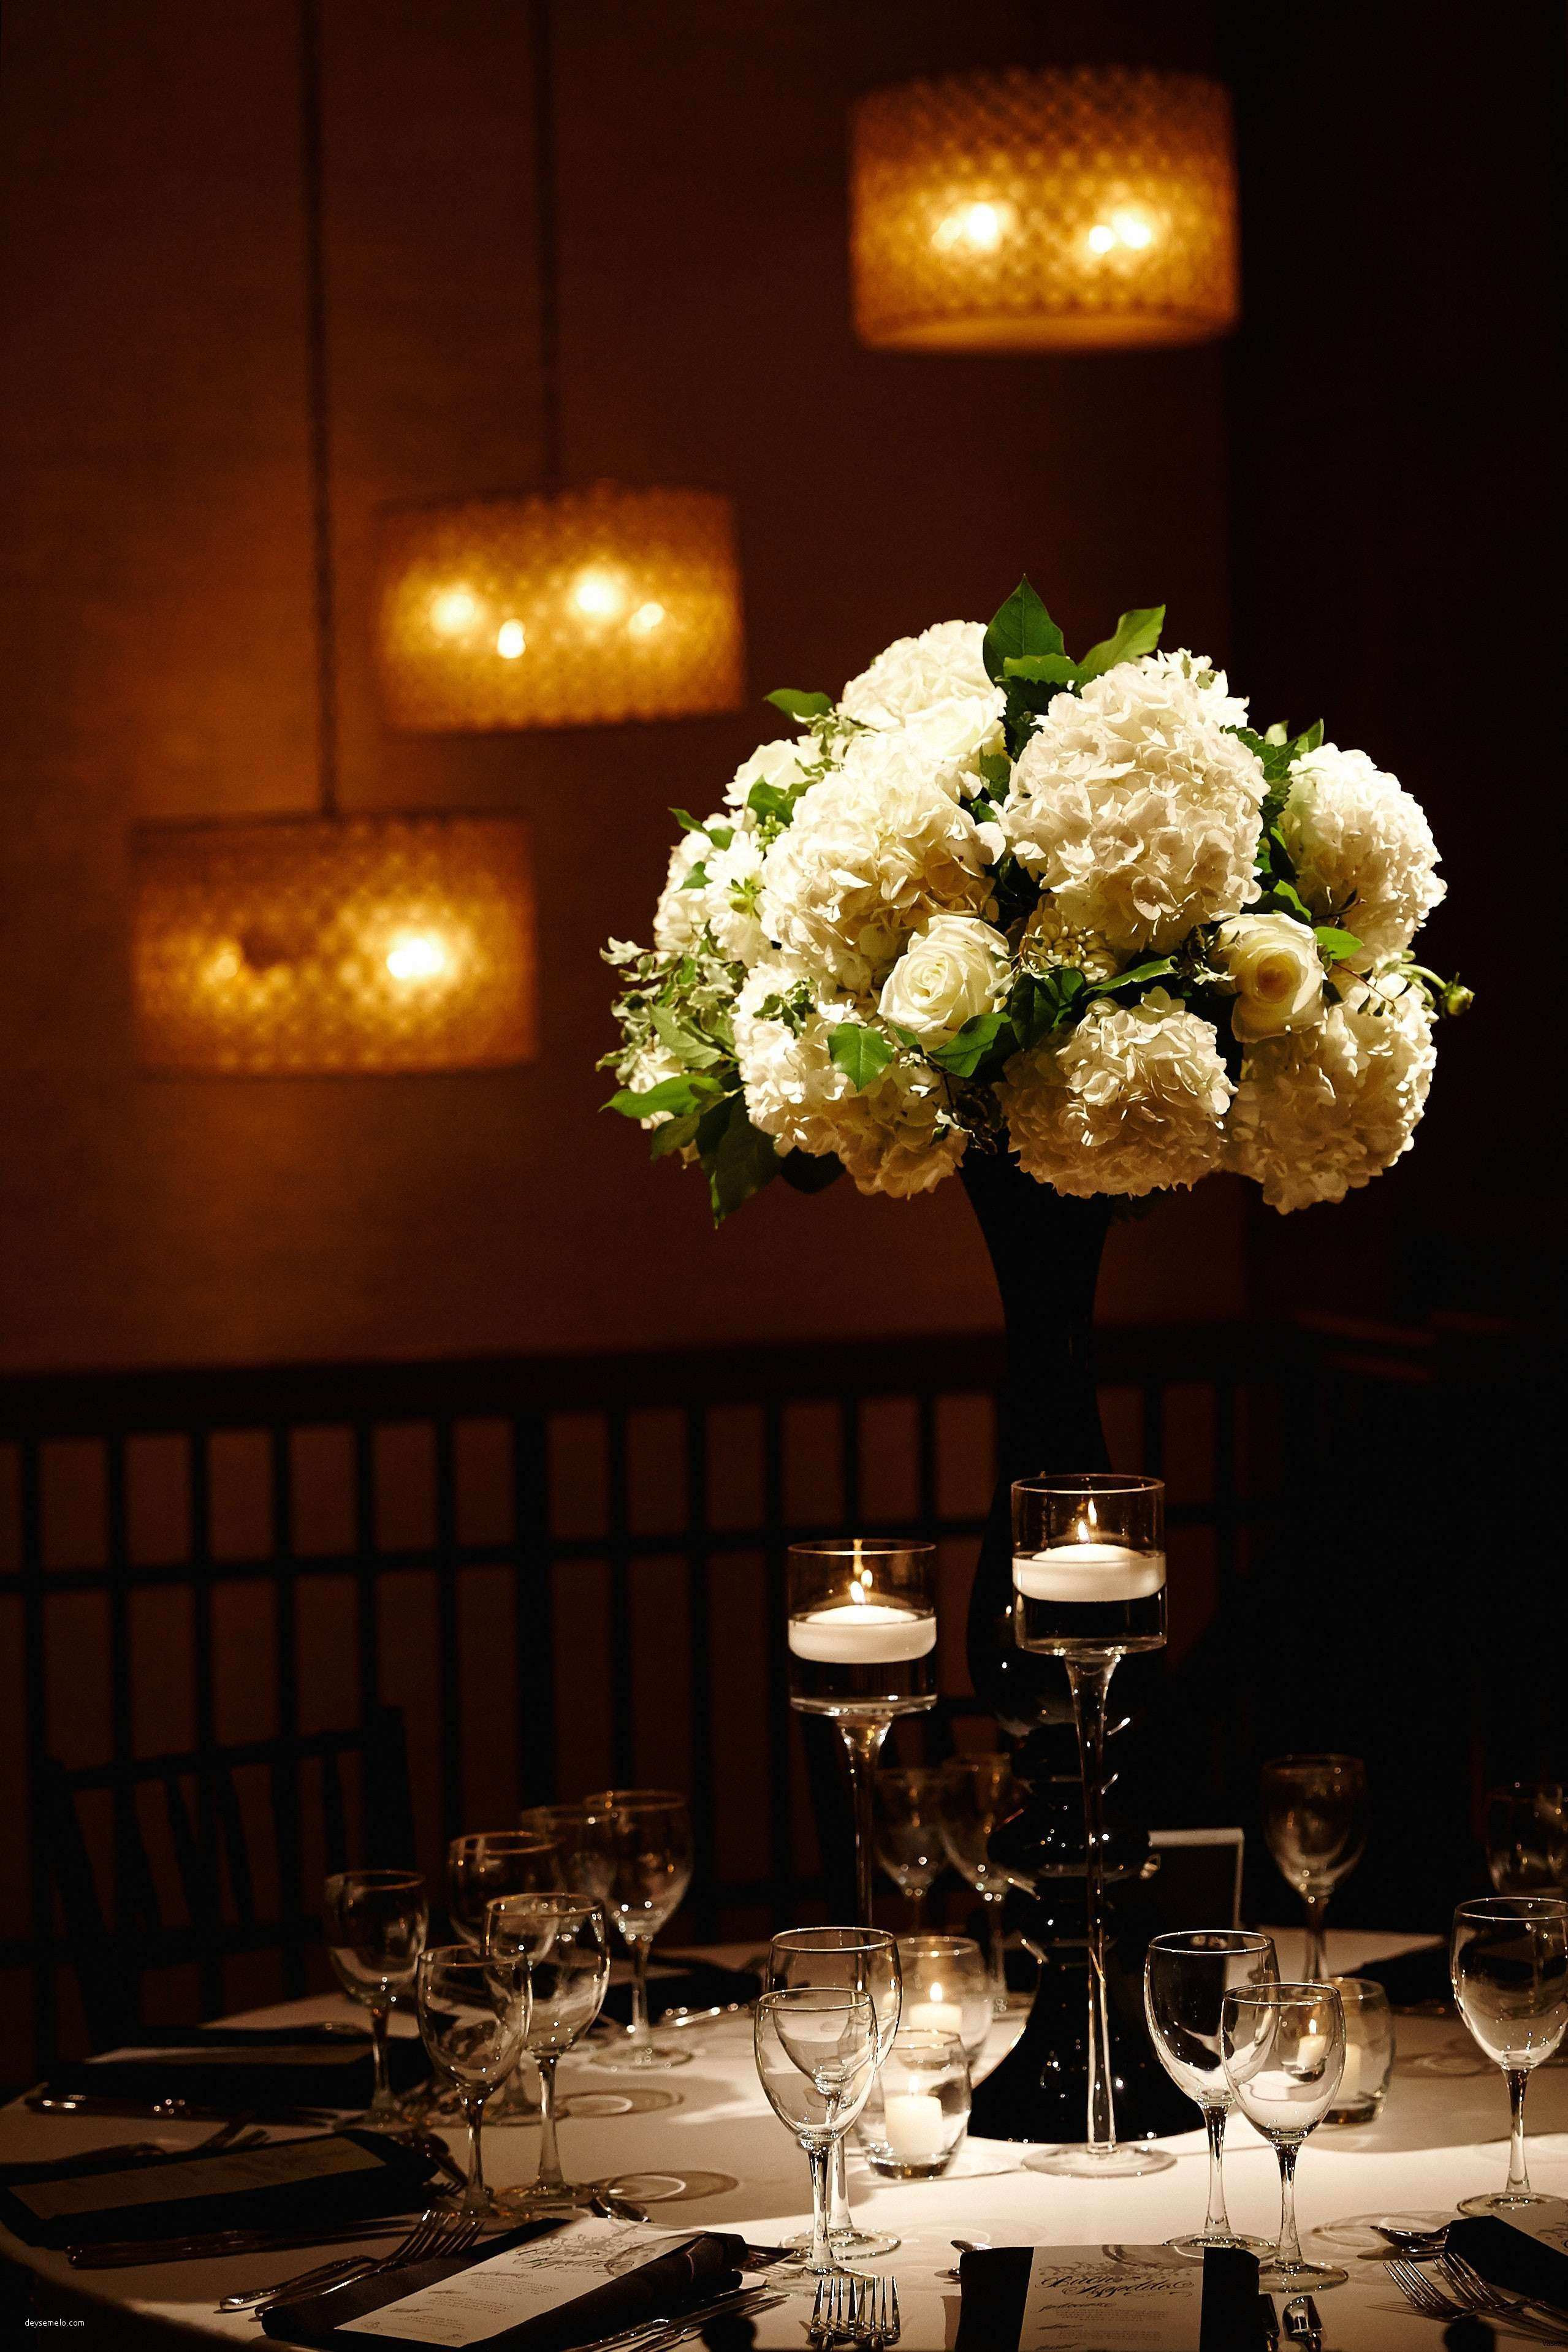 antique flower vases of elegant bridal shower with vases vase centerpieces ideas clear pertaining to modern bridal shower and il fullxfull h vases black vase white flowers zoomi 0d with design